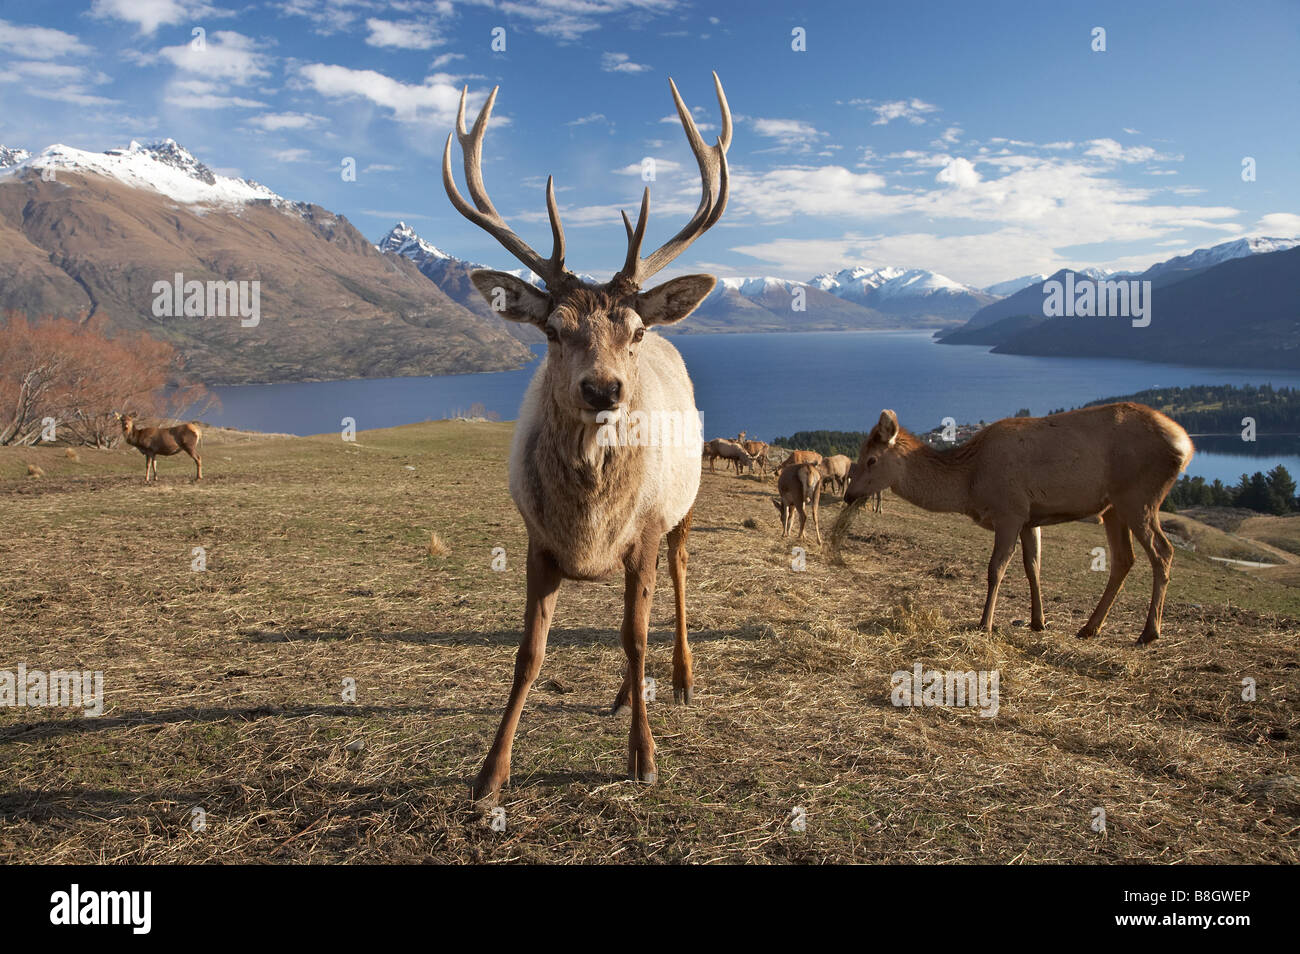 Rothirsch Cervus Elaphus Deer Park Heights Queenstown Neuseeland Südinsel Stockfoto